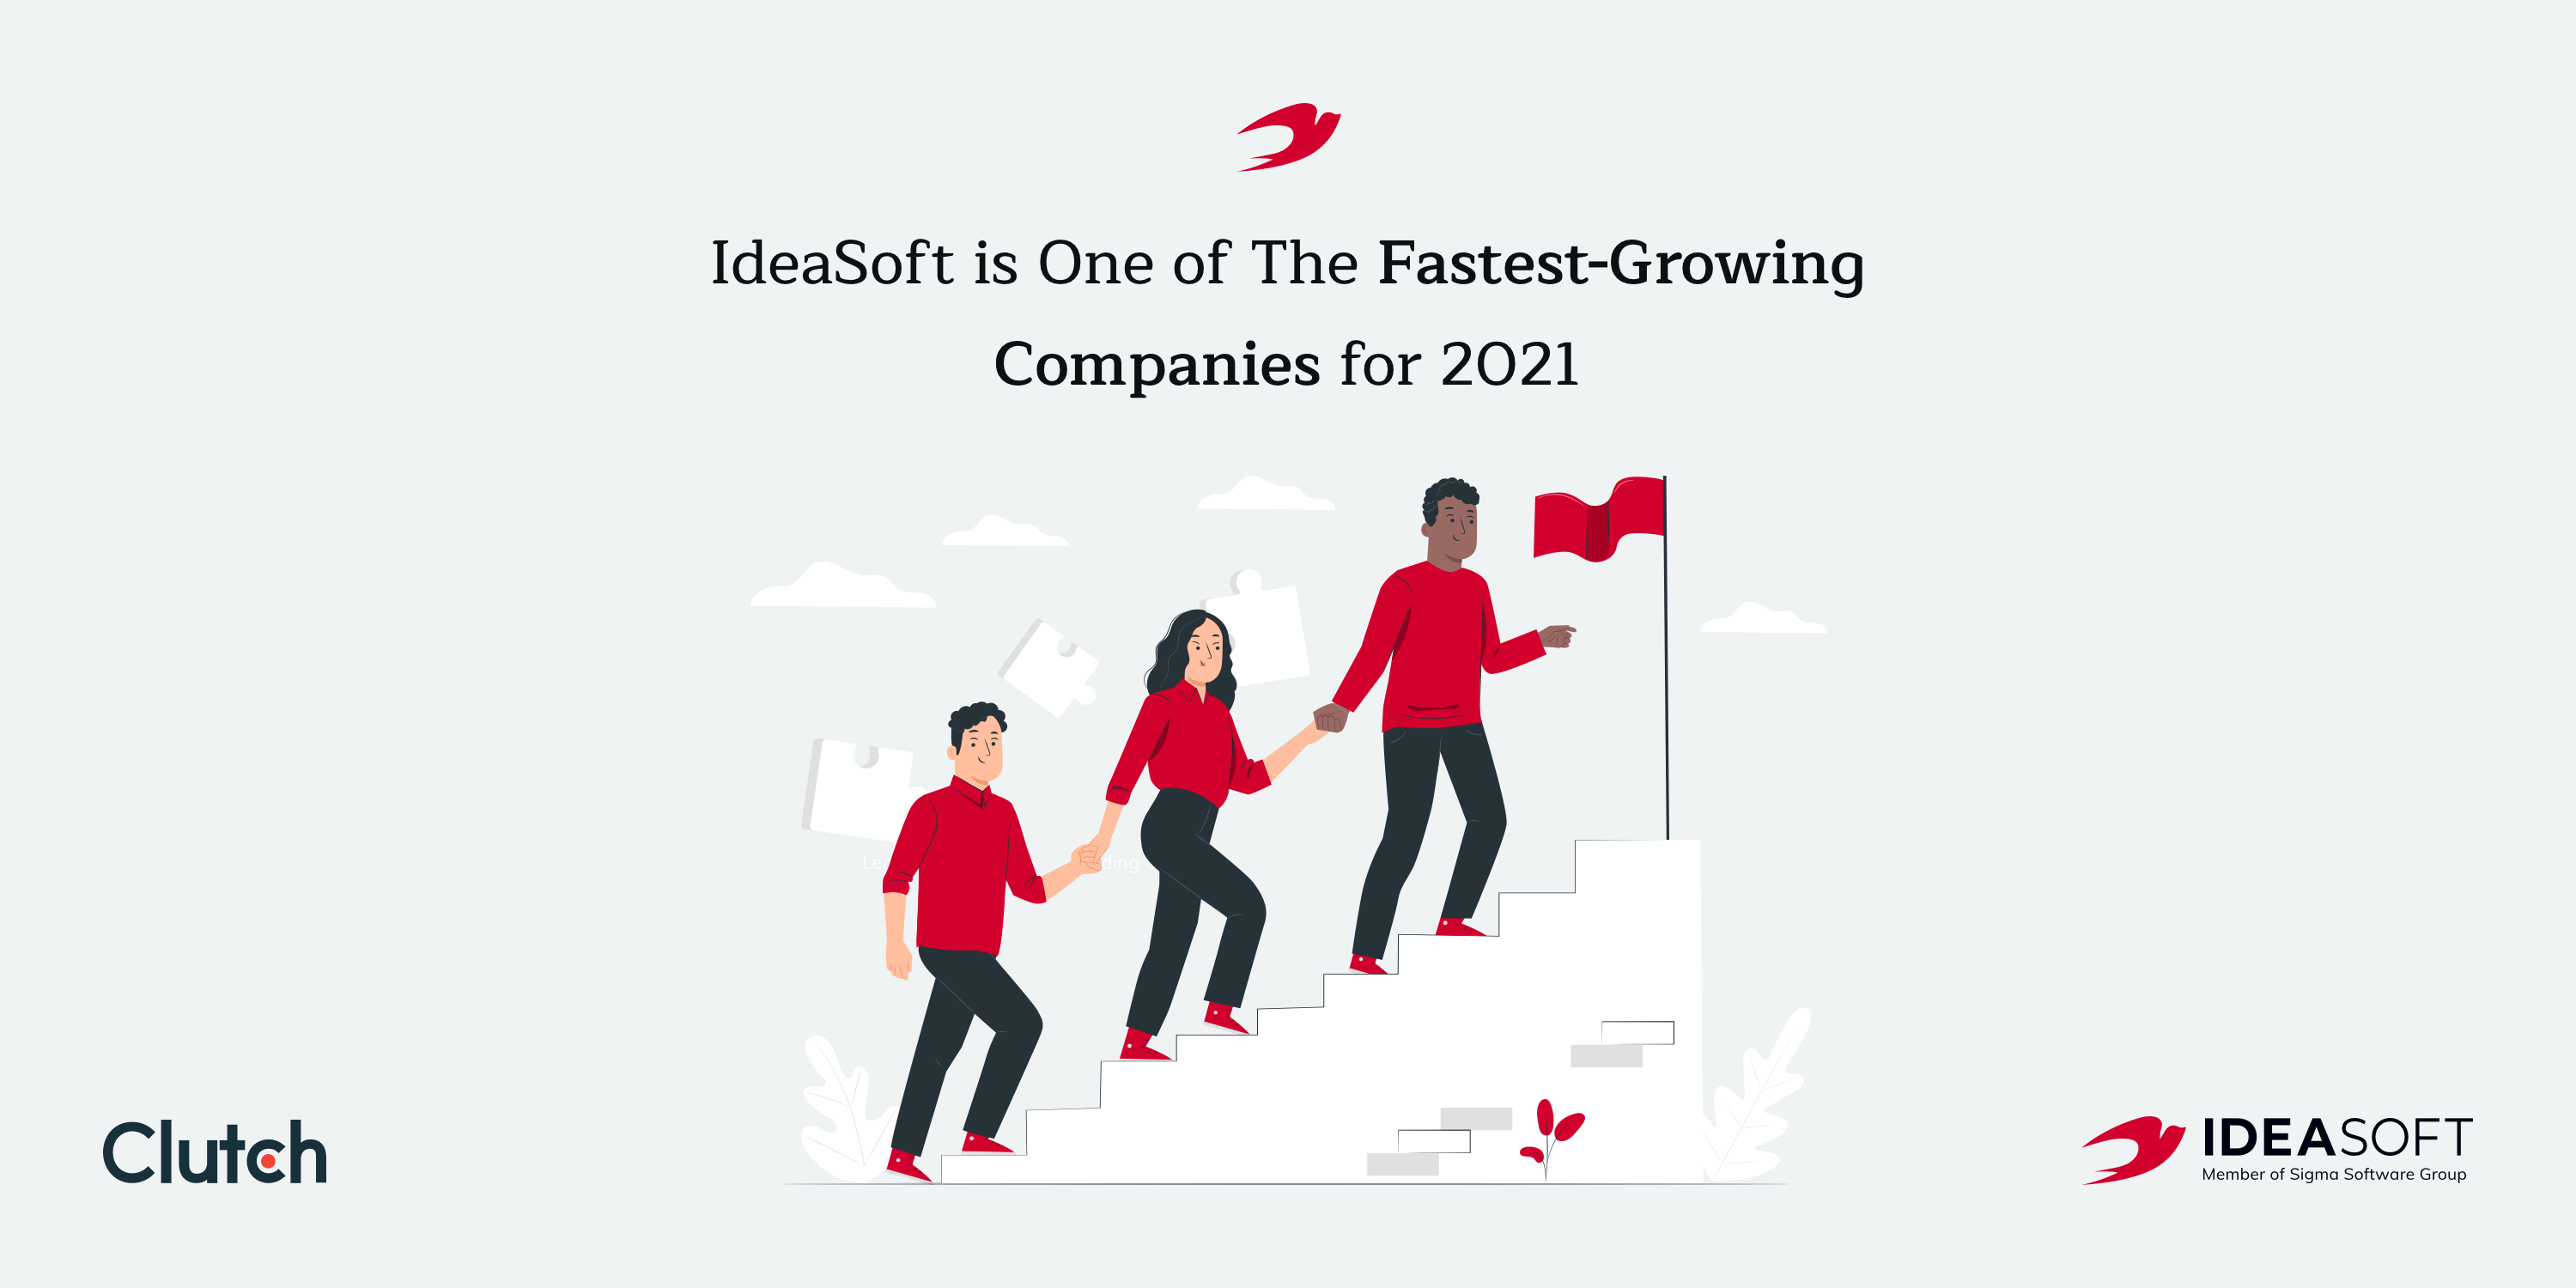 ideasoft is a fastest-growing company